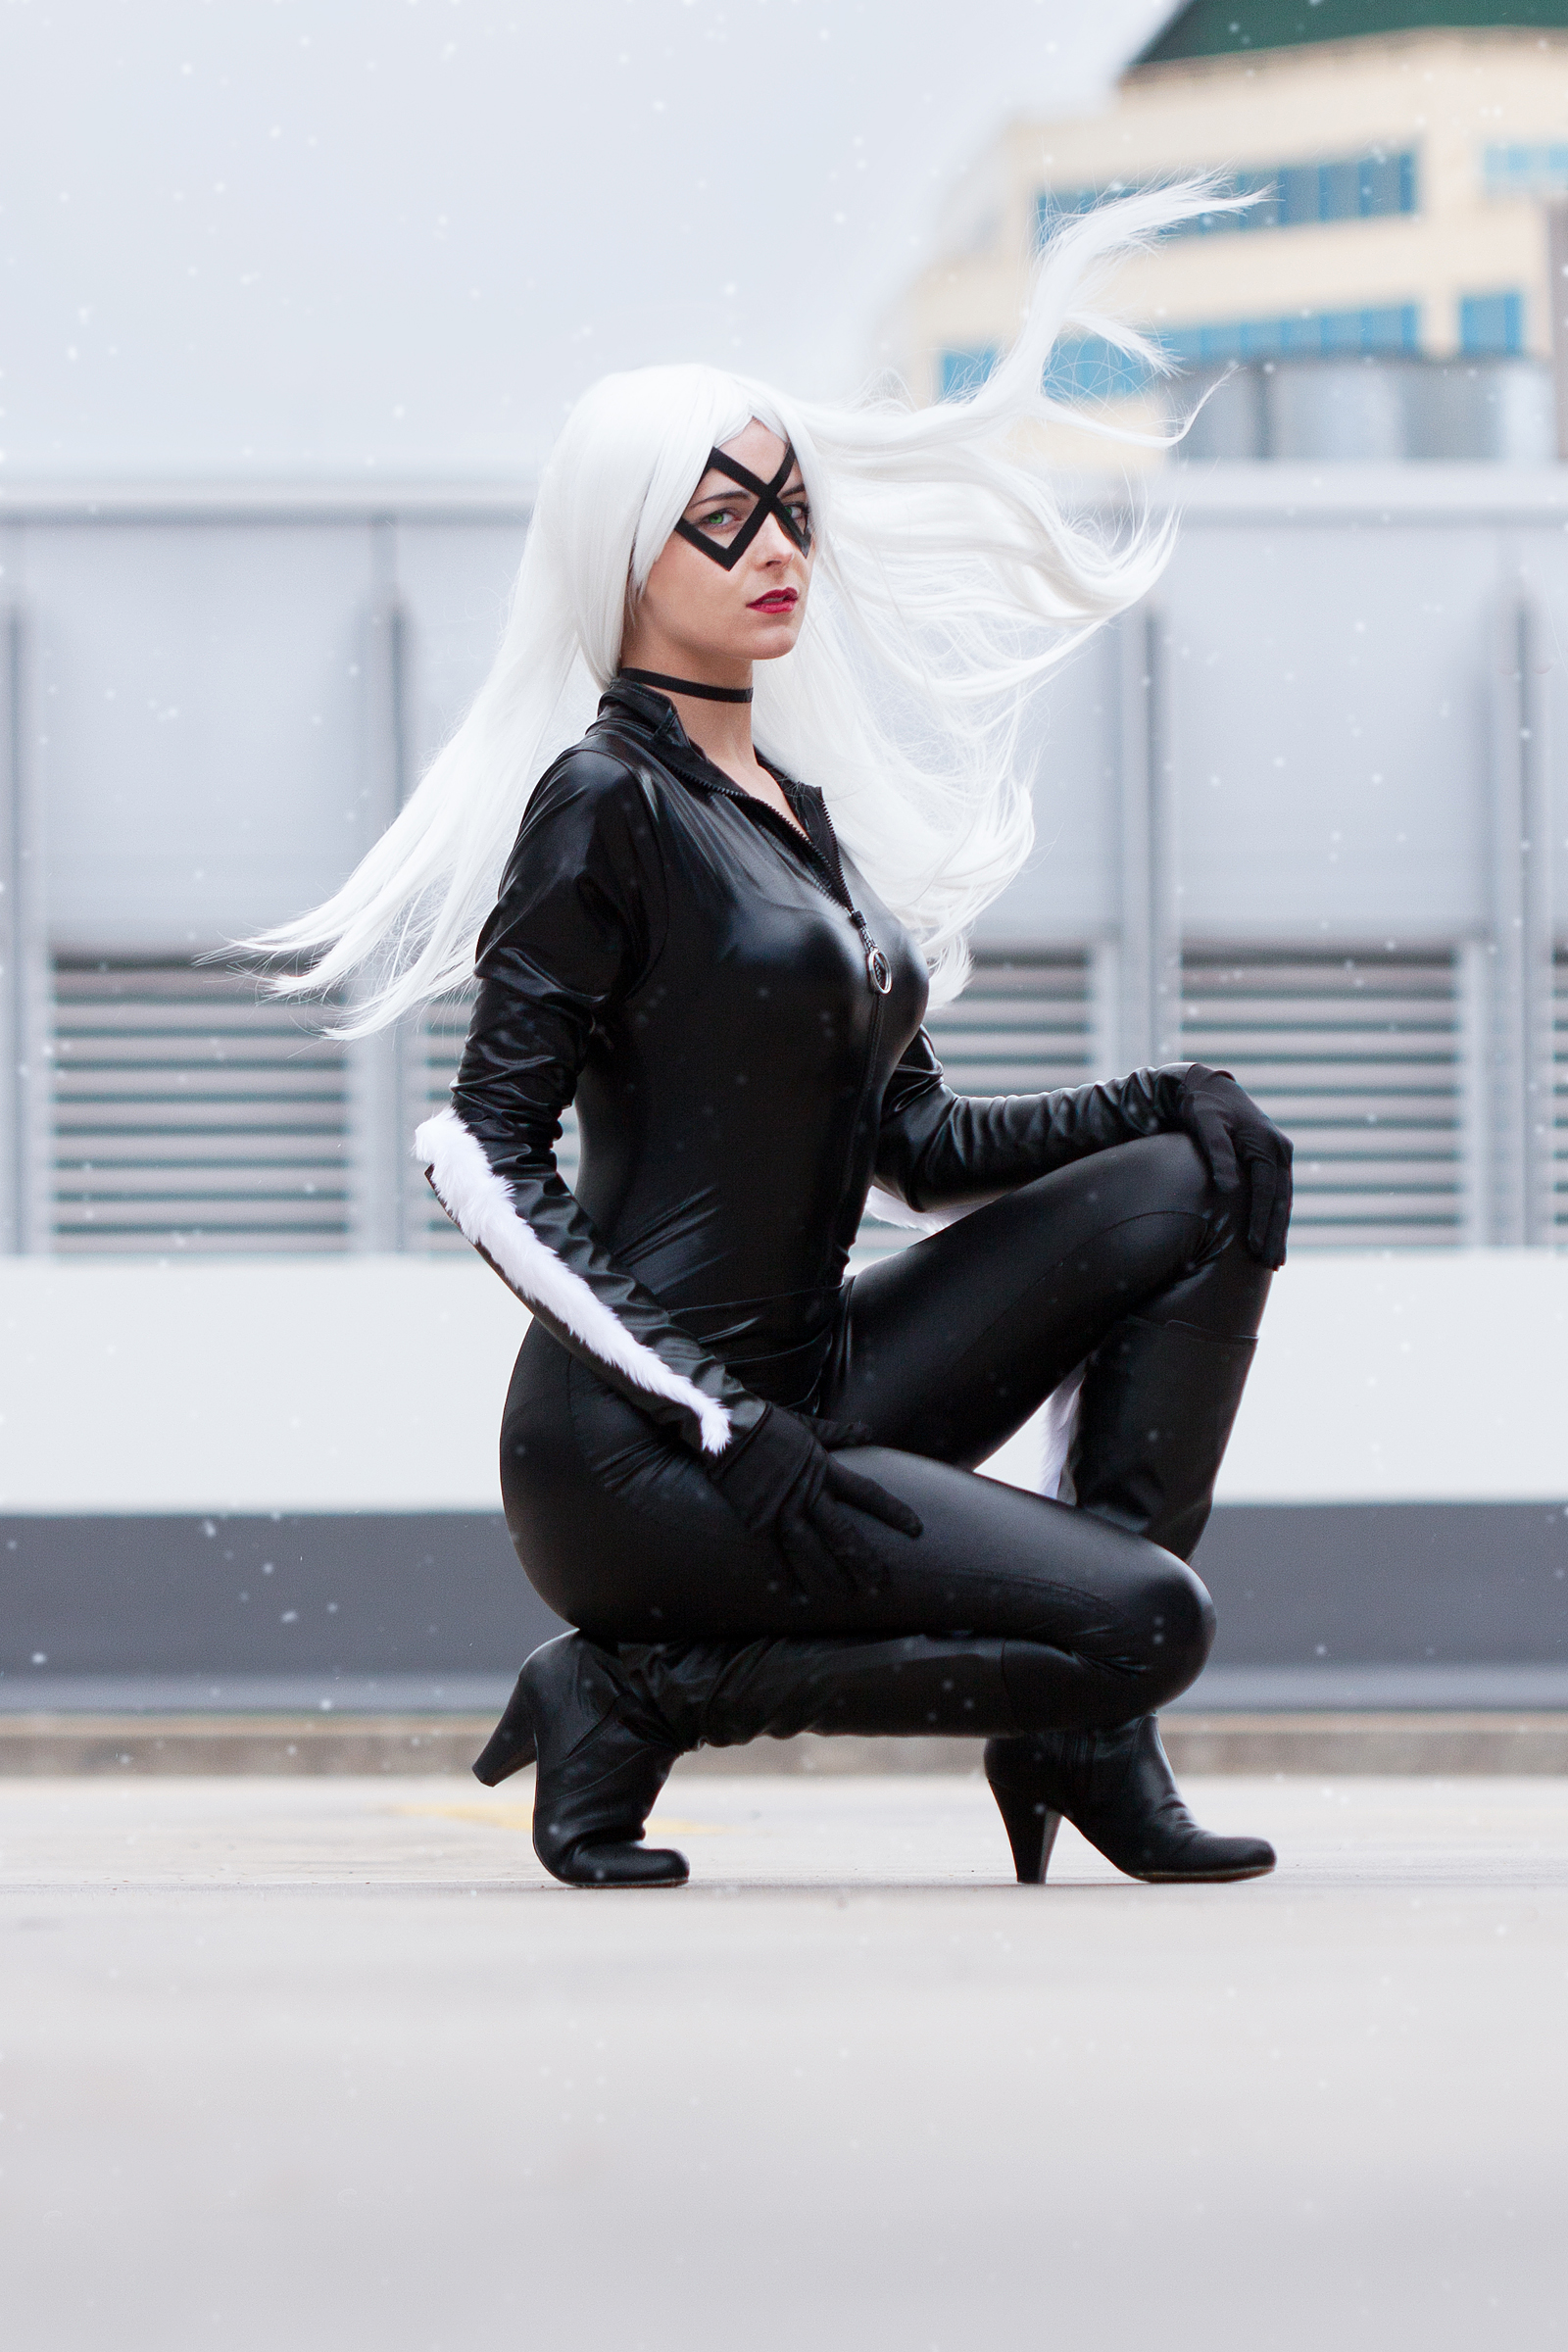 JusZ Cosplay Black Cat